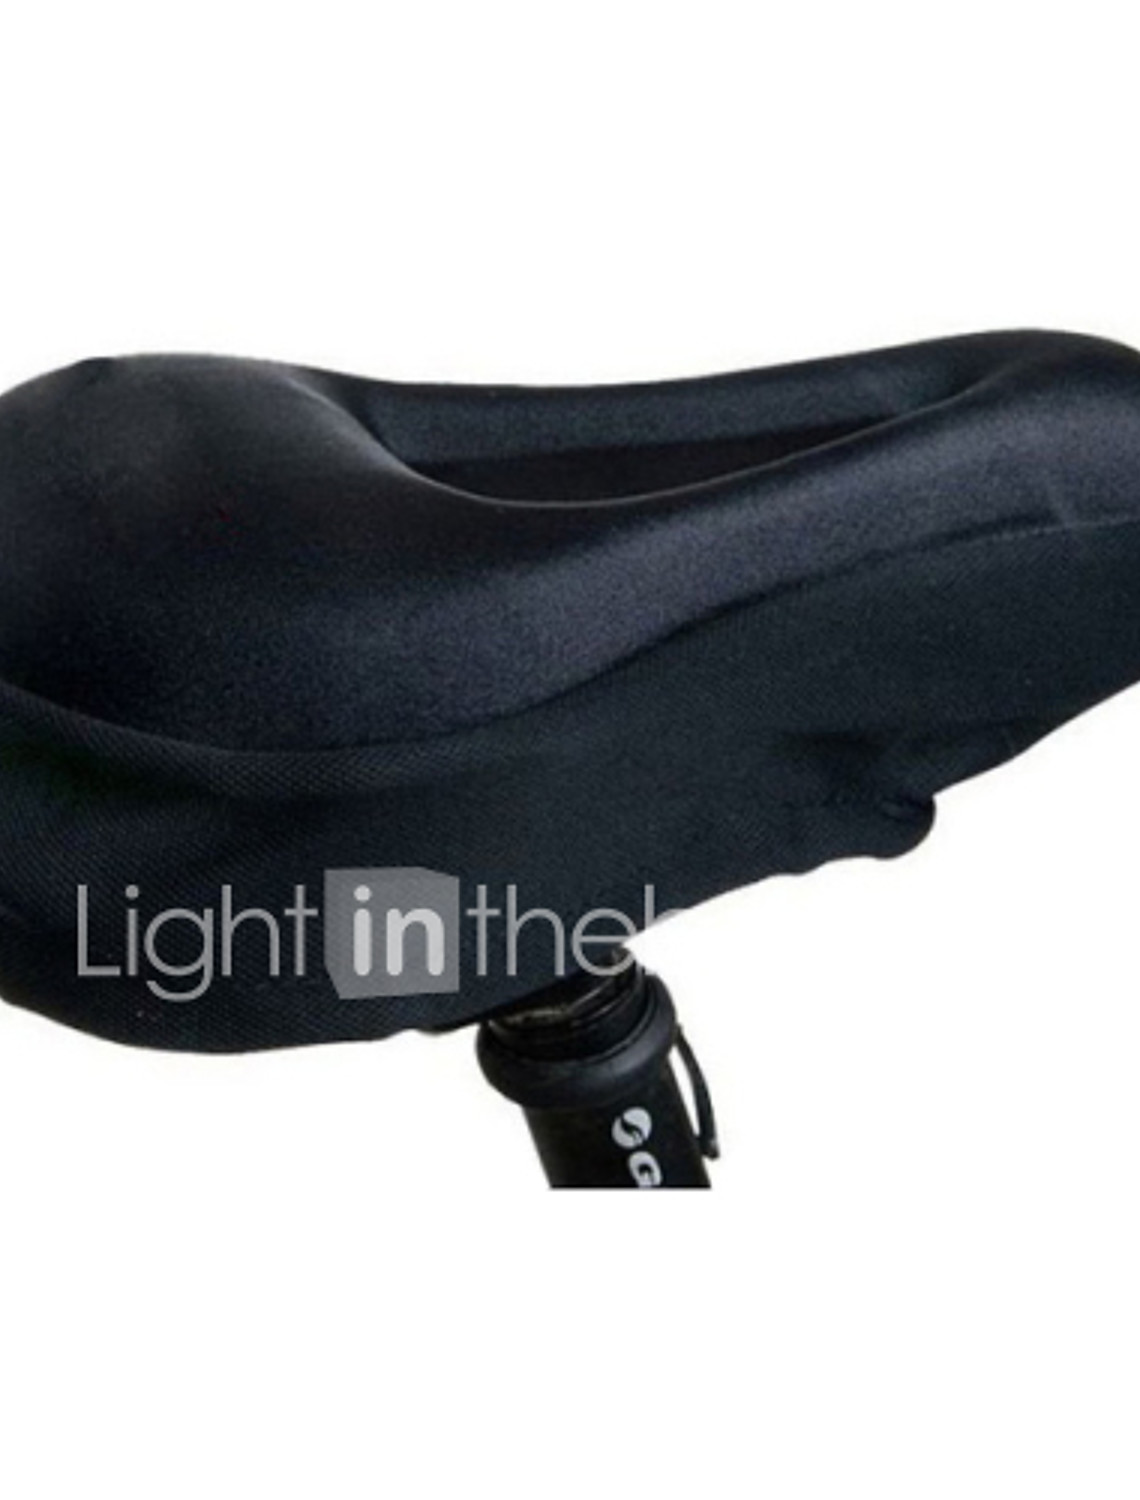 Professional Bicycle Seat Comfort Saddle Cycling Parts Pain-Relief CR-MO Rail